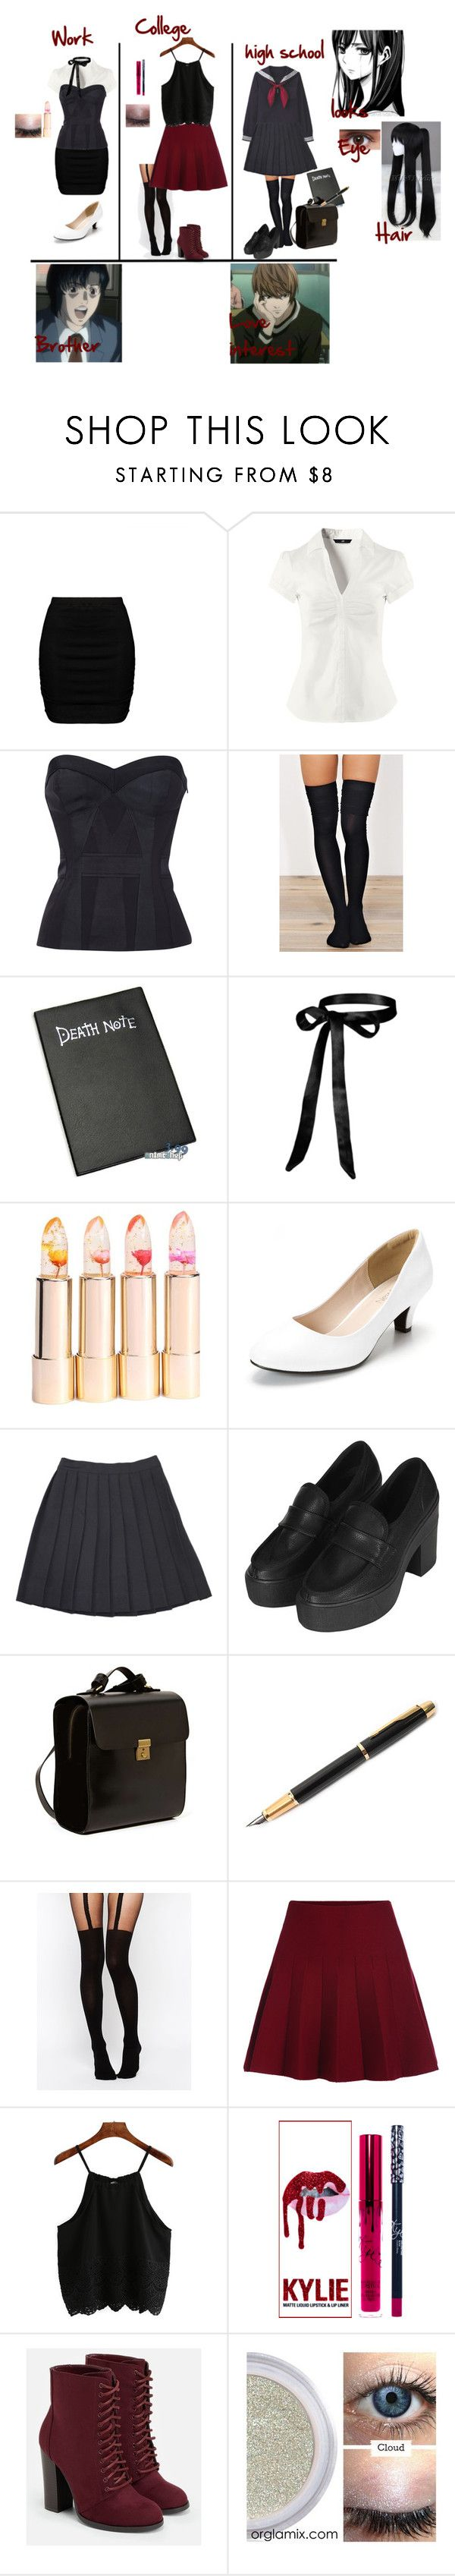 """""""Death Note (Remake)"""" by bec1995 ❤ liked on Polyvore featuring Zizzi, H&M, Ÿù, Topshop, Kelsi Dagger Brooklyn, Fountain, Matsuda, ASOS and JustFab"""